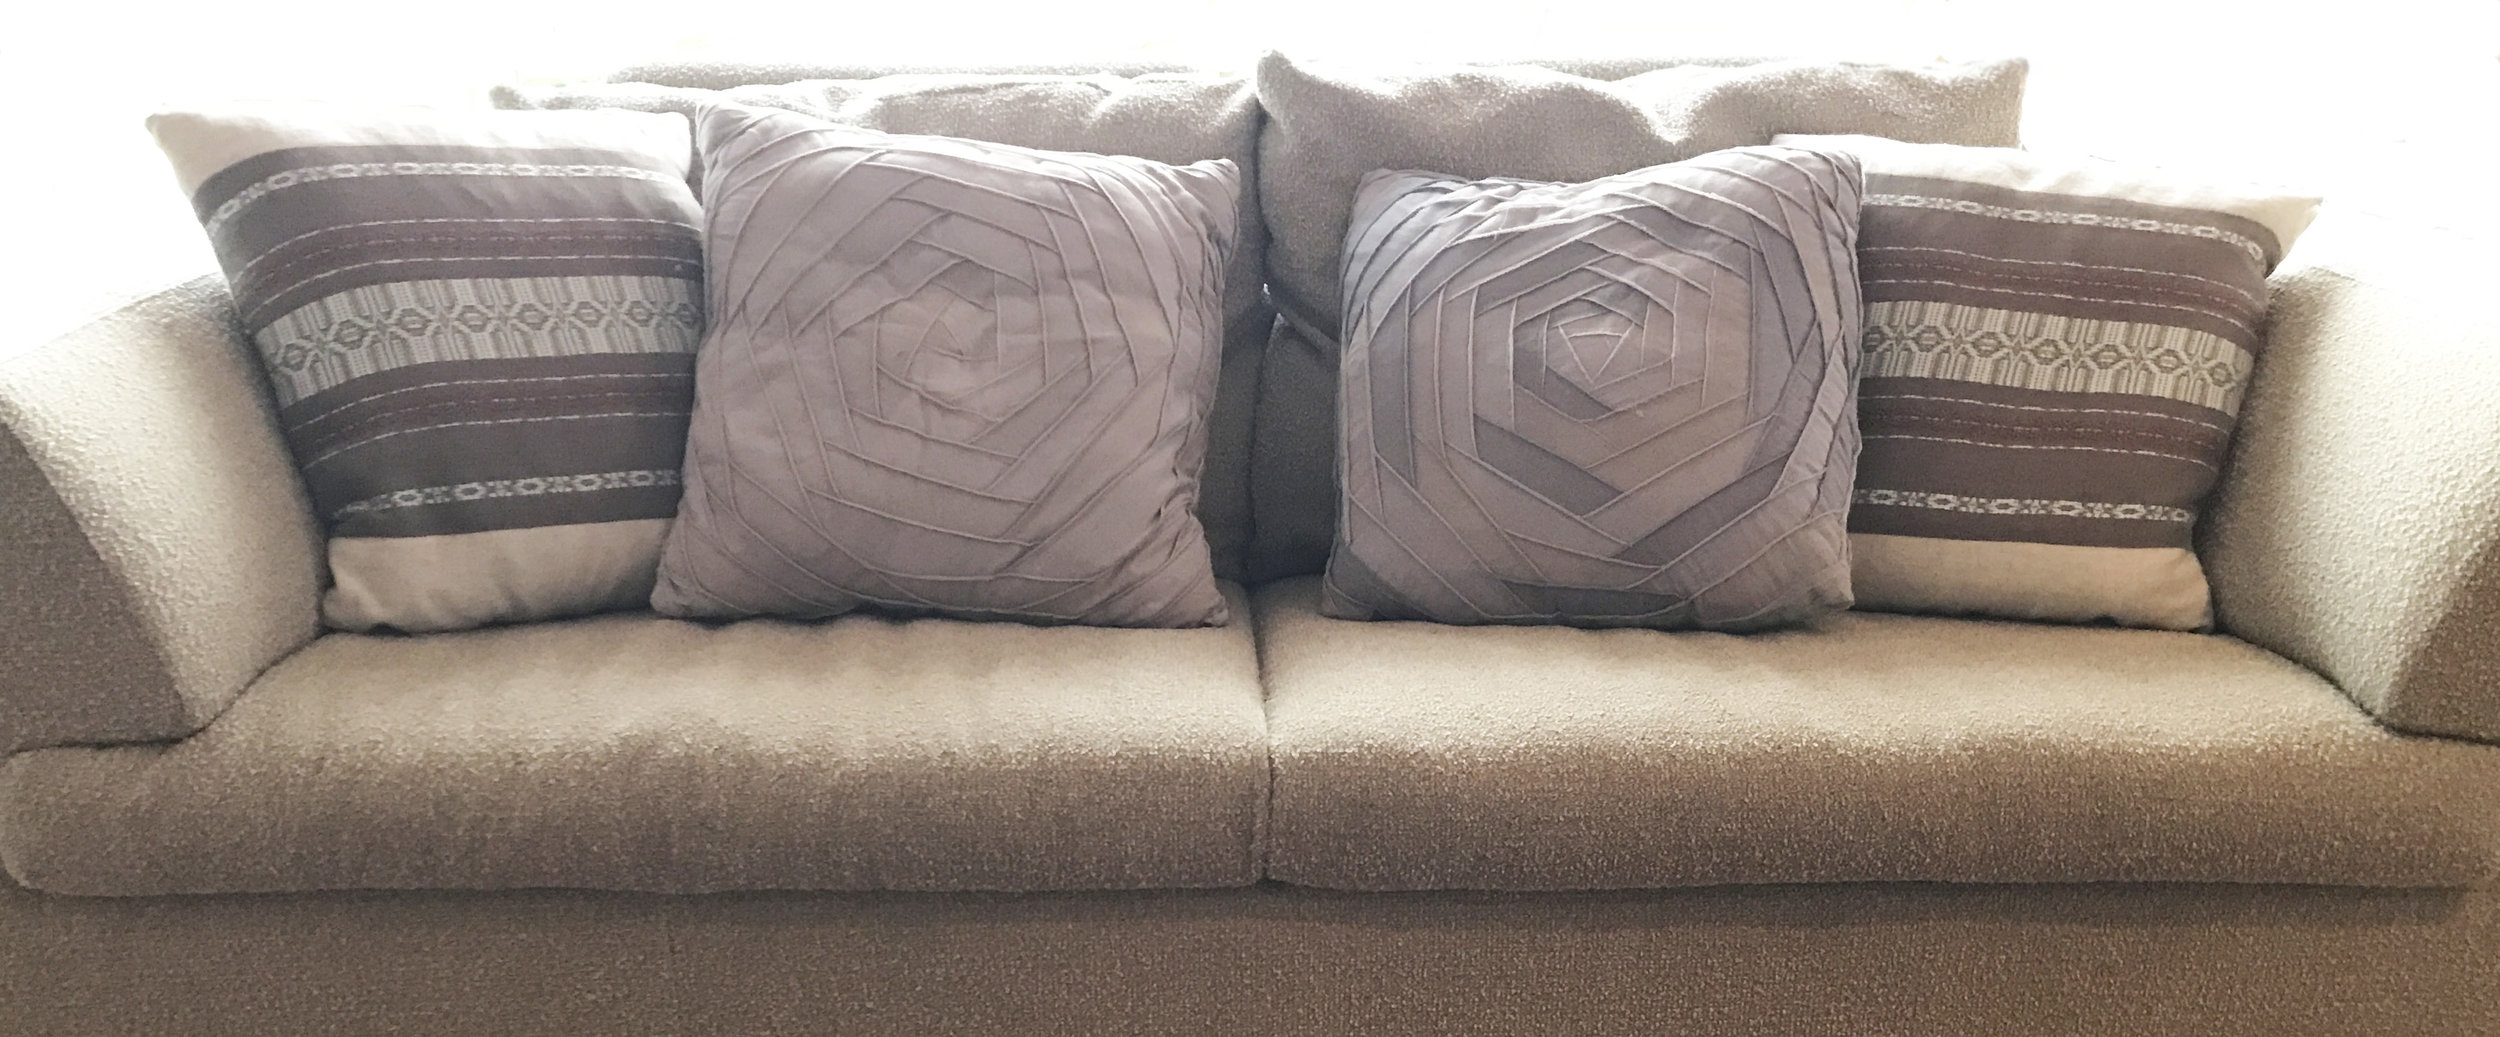 bandage and Lummi Island cushions